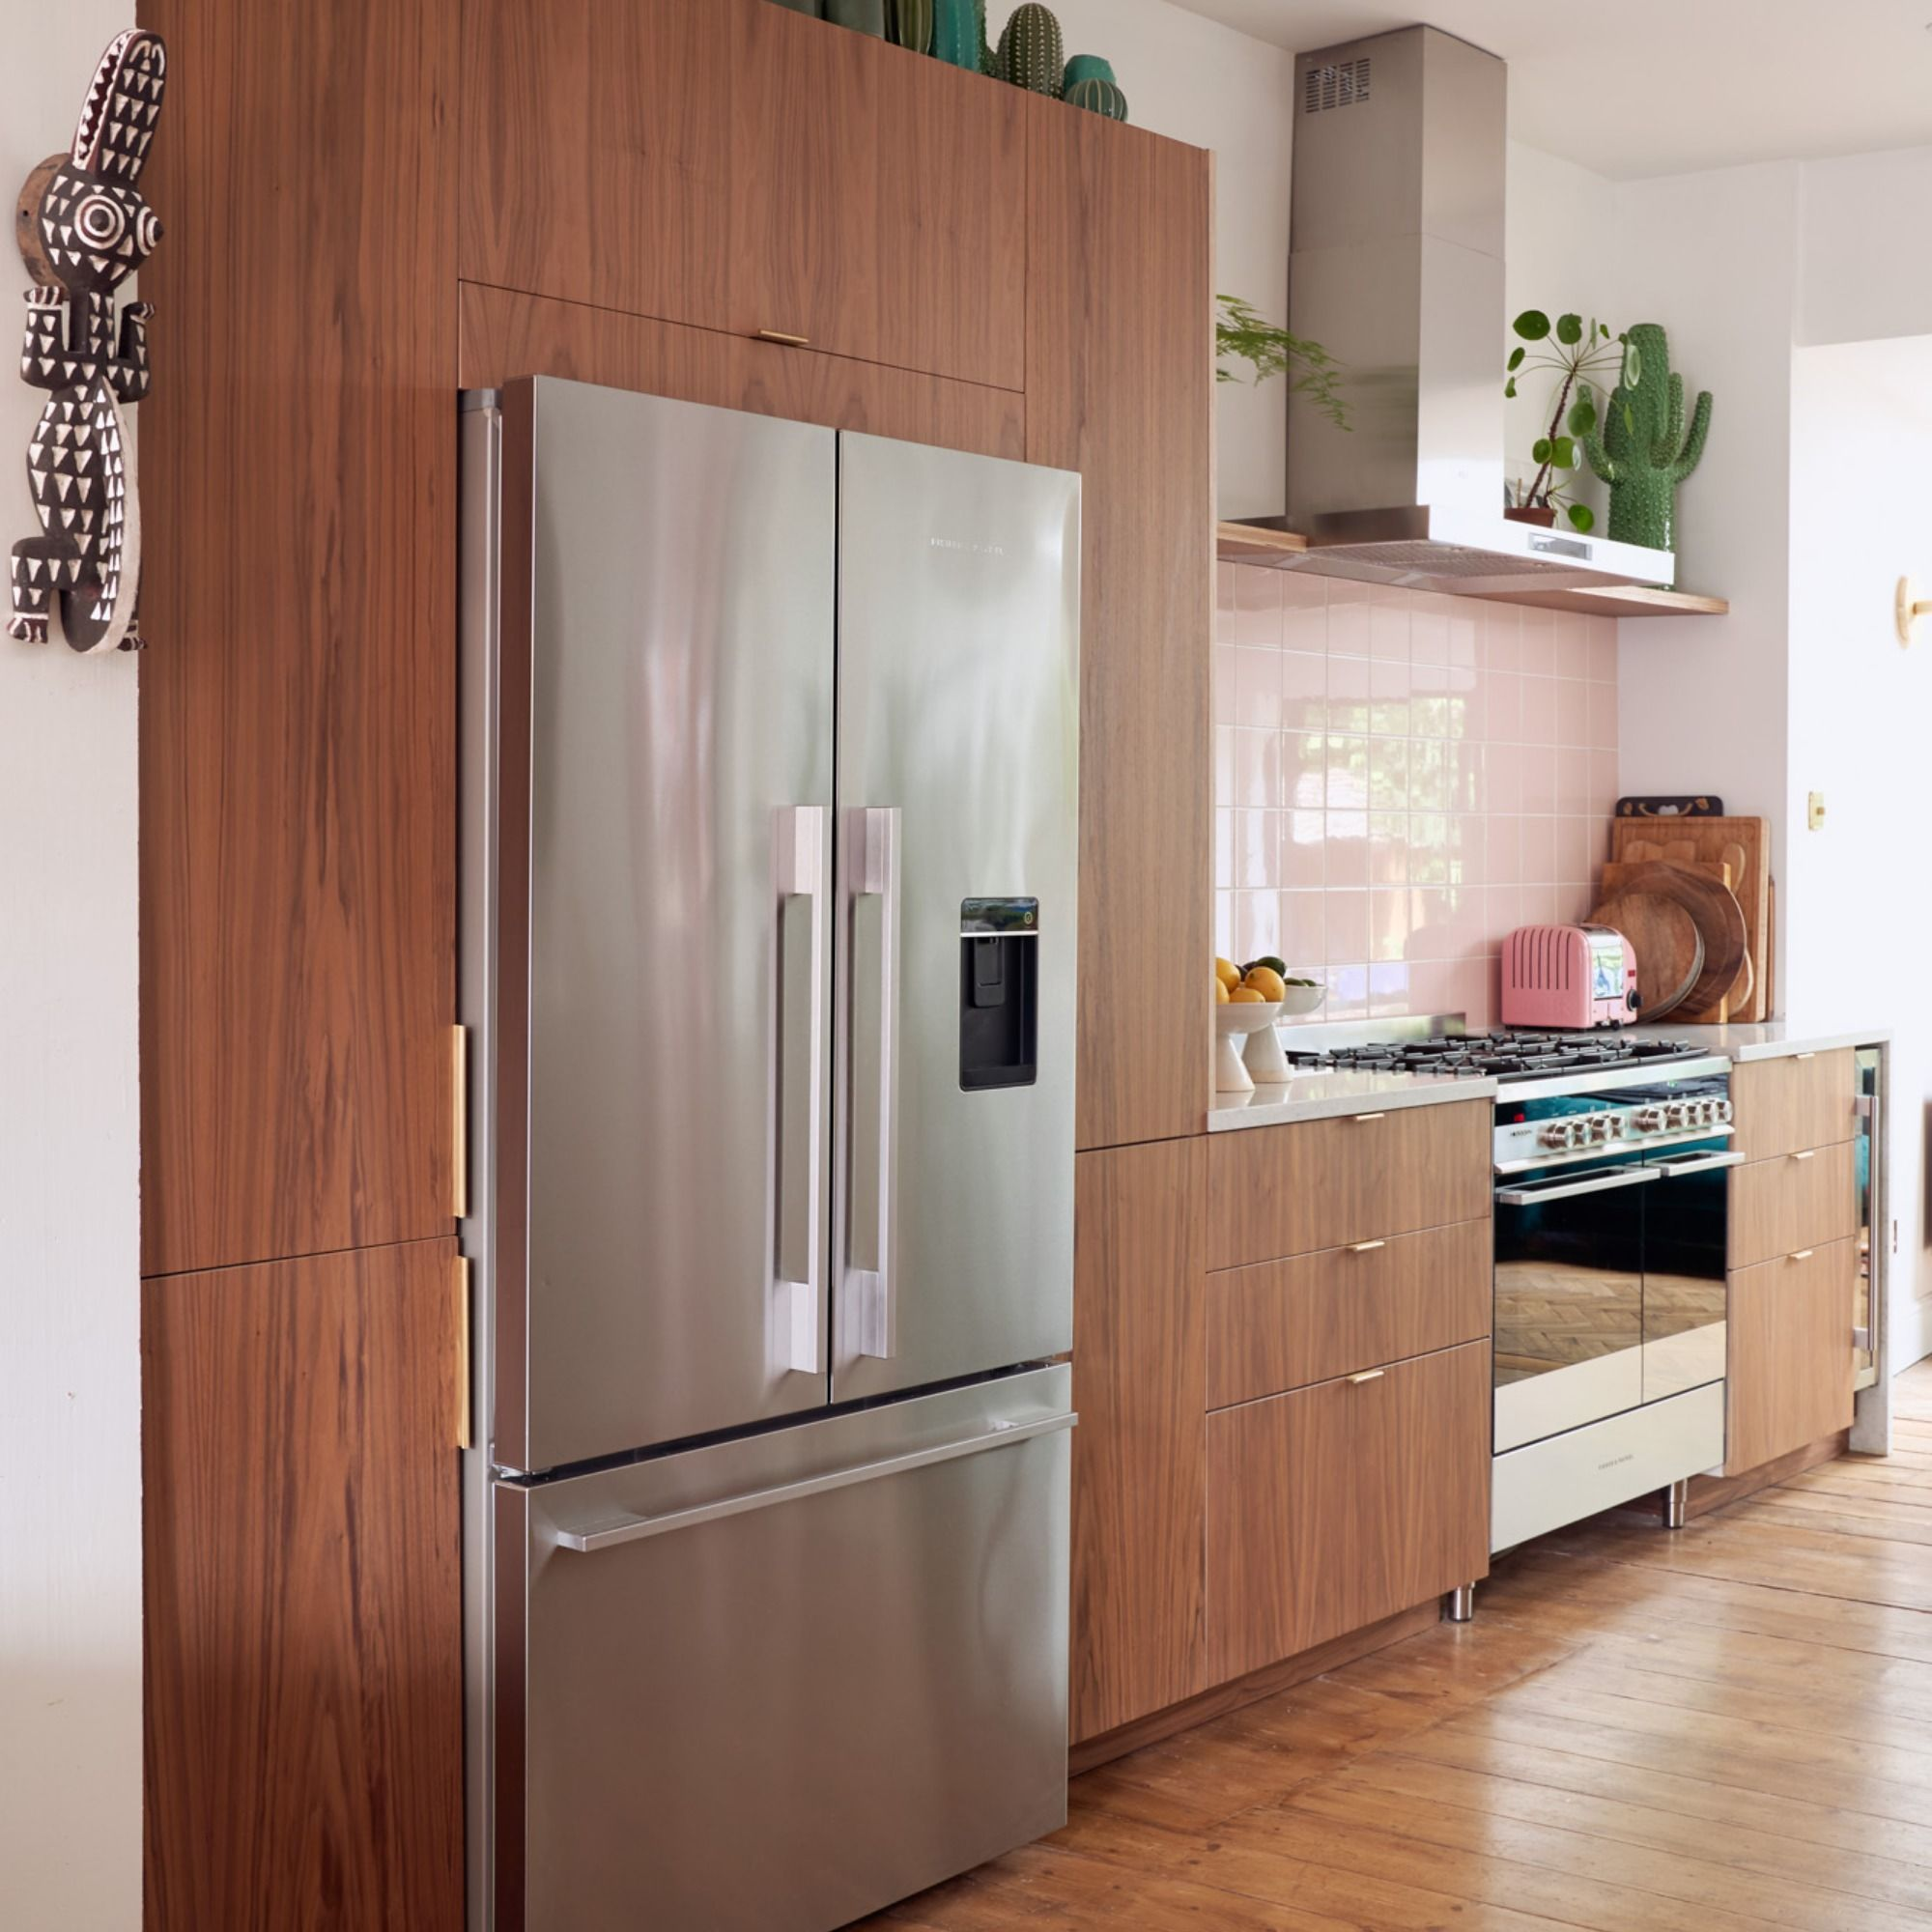 Plykea Create your dream kitchen for a fraction of the